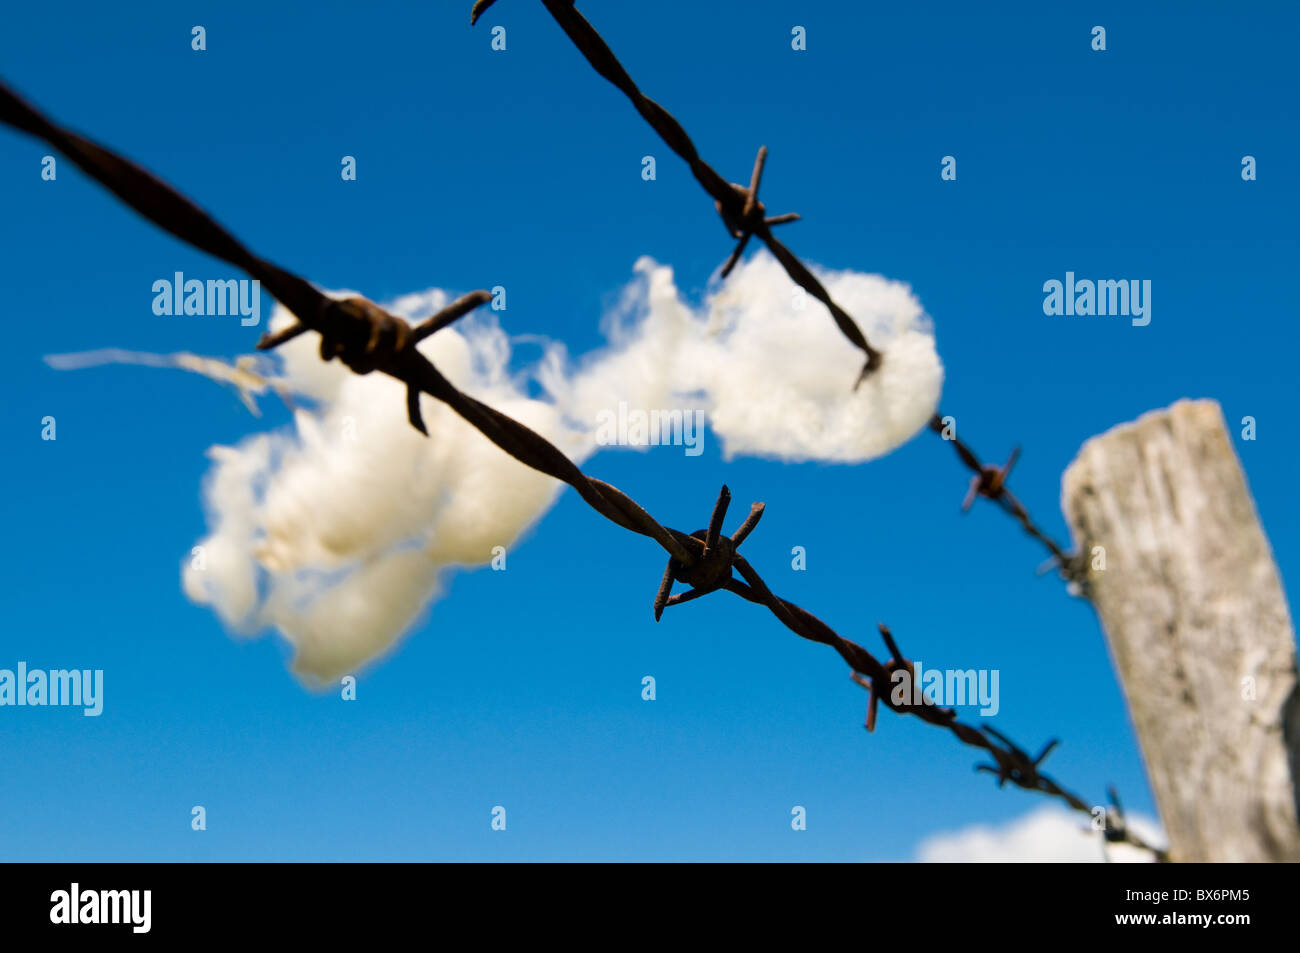 Wool on Barbed Wire Fence Blowing in the Wind Against a deep Blue Sky - Stock Image